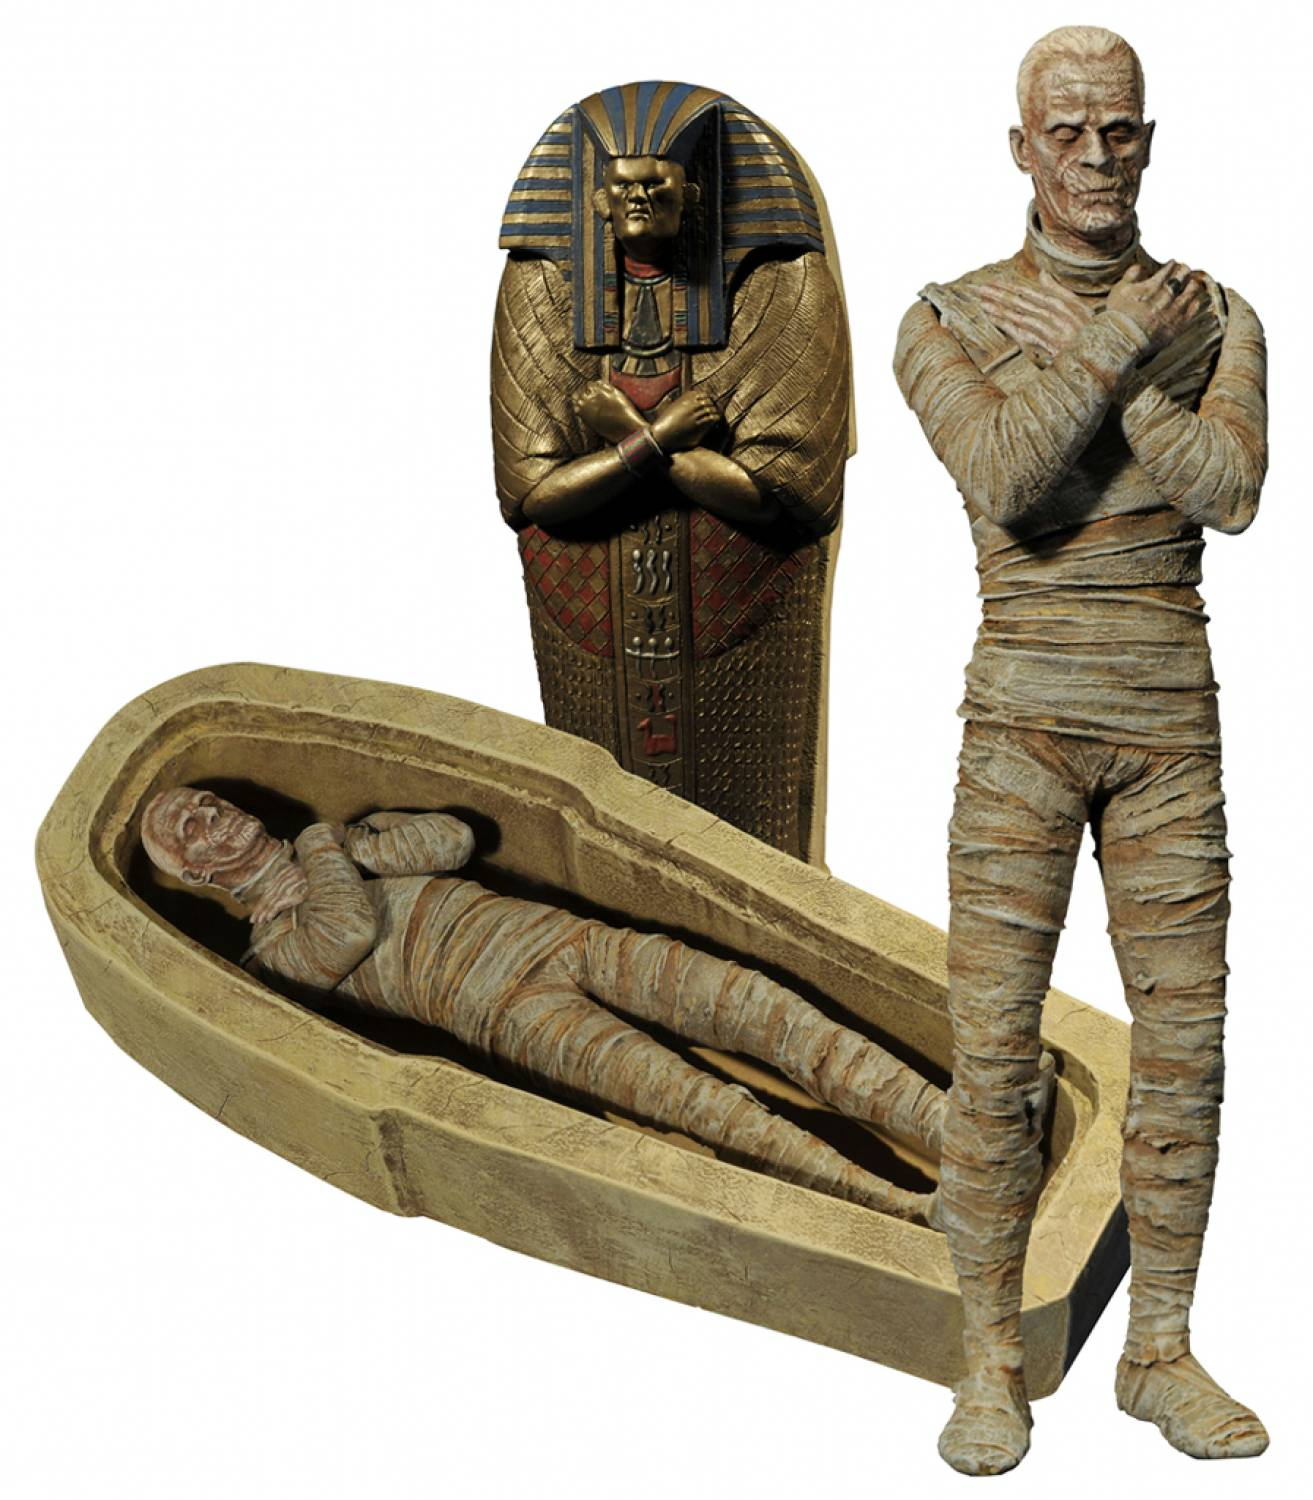 25 Interesting Facts About Mummies and Corpses | KickassFacts.com